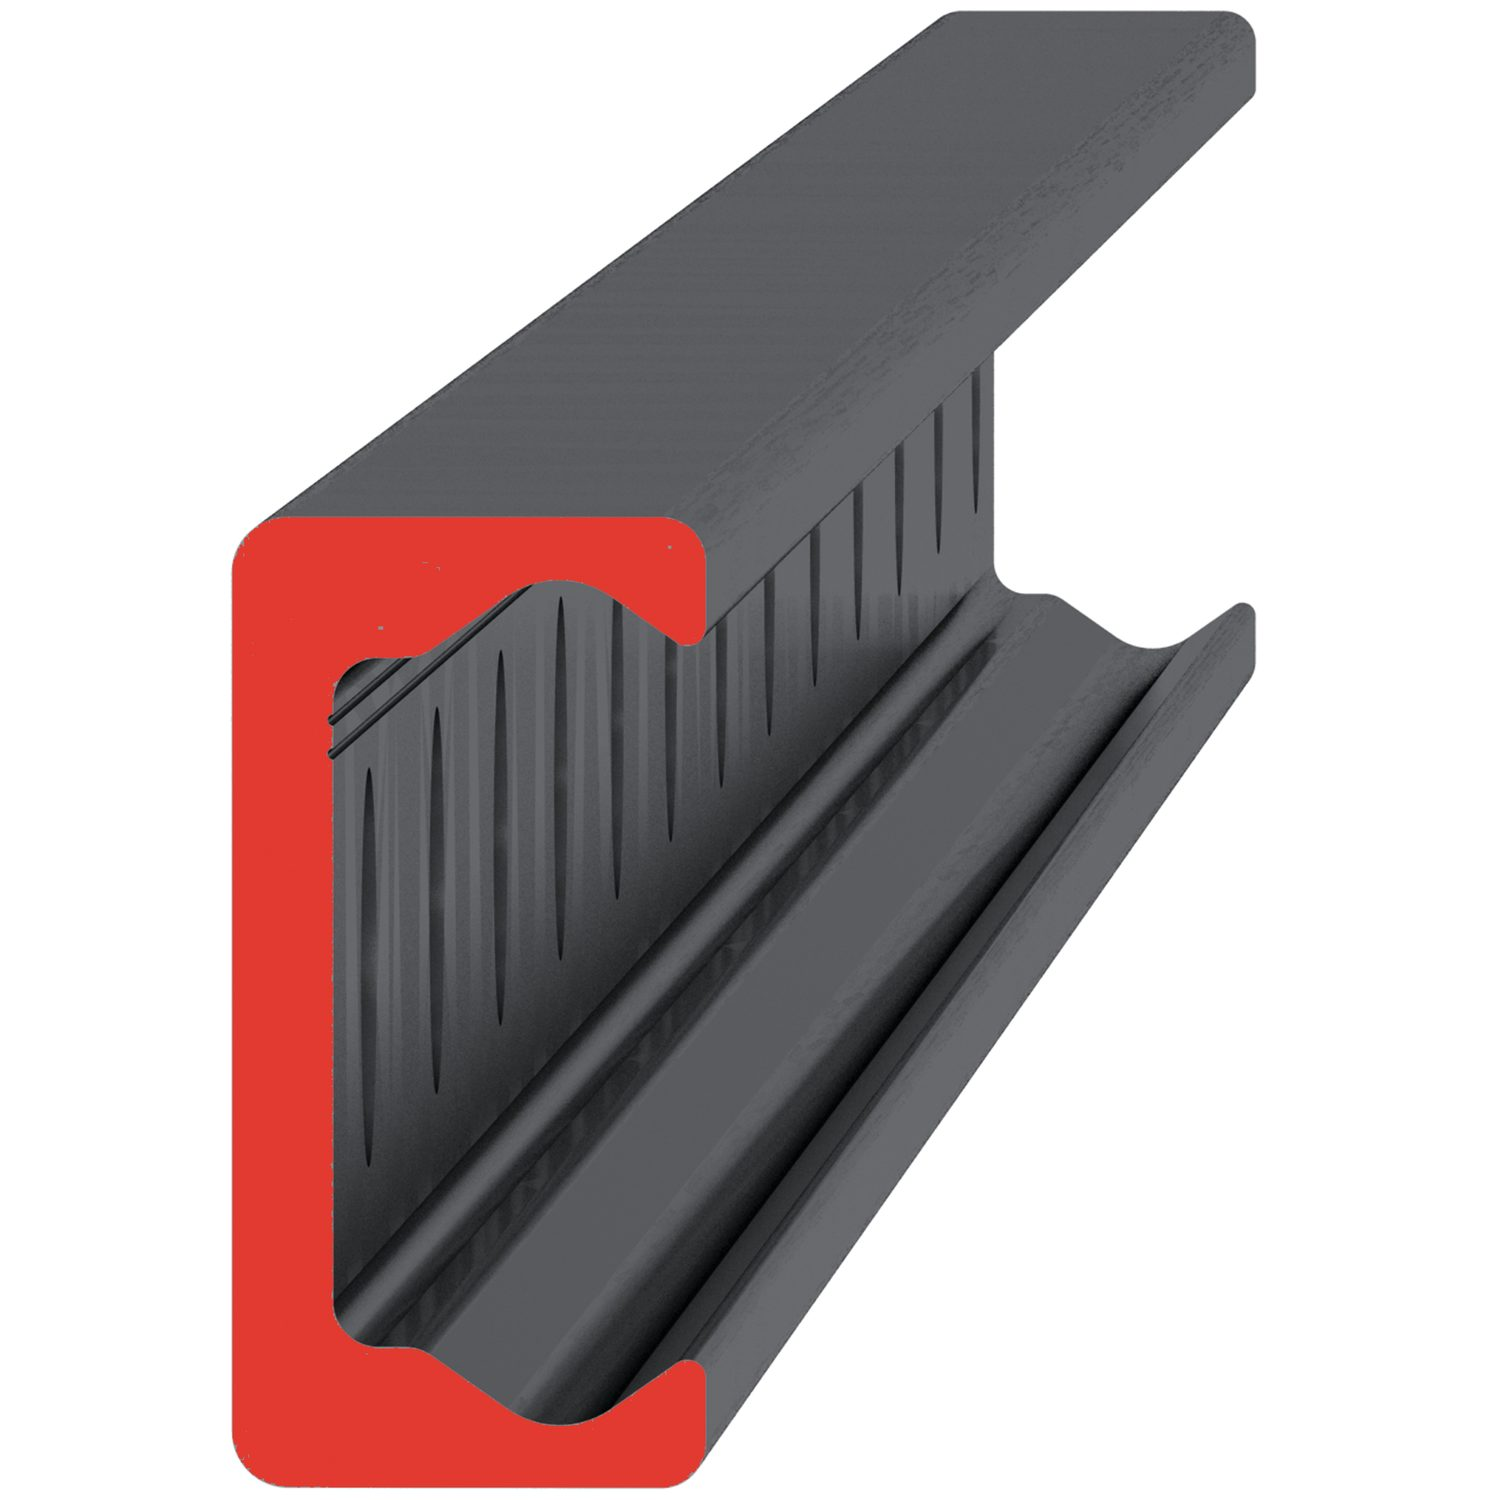 Product L1918.TL, Light Duty T Rail counterbored holes /